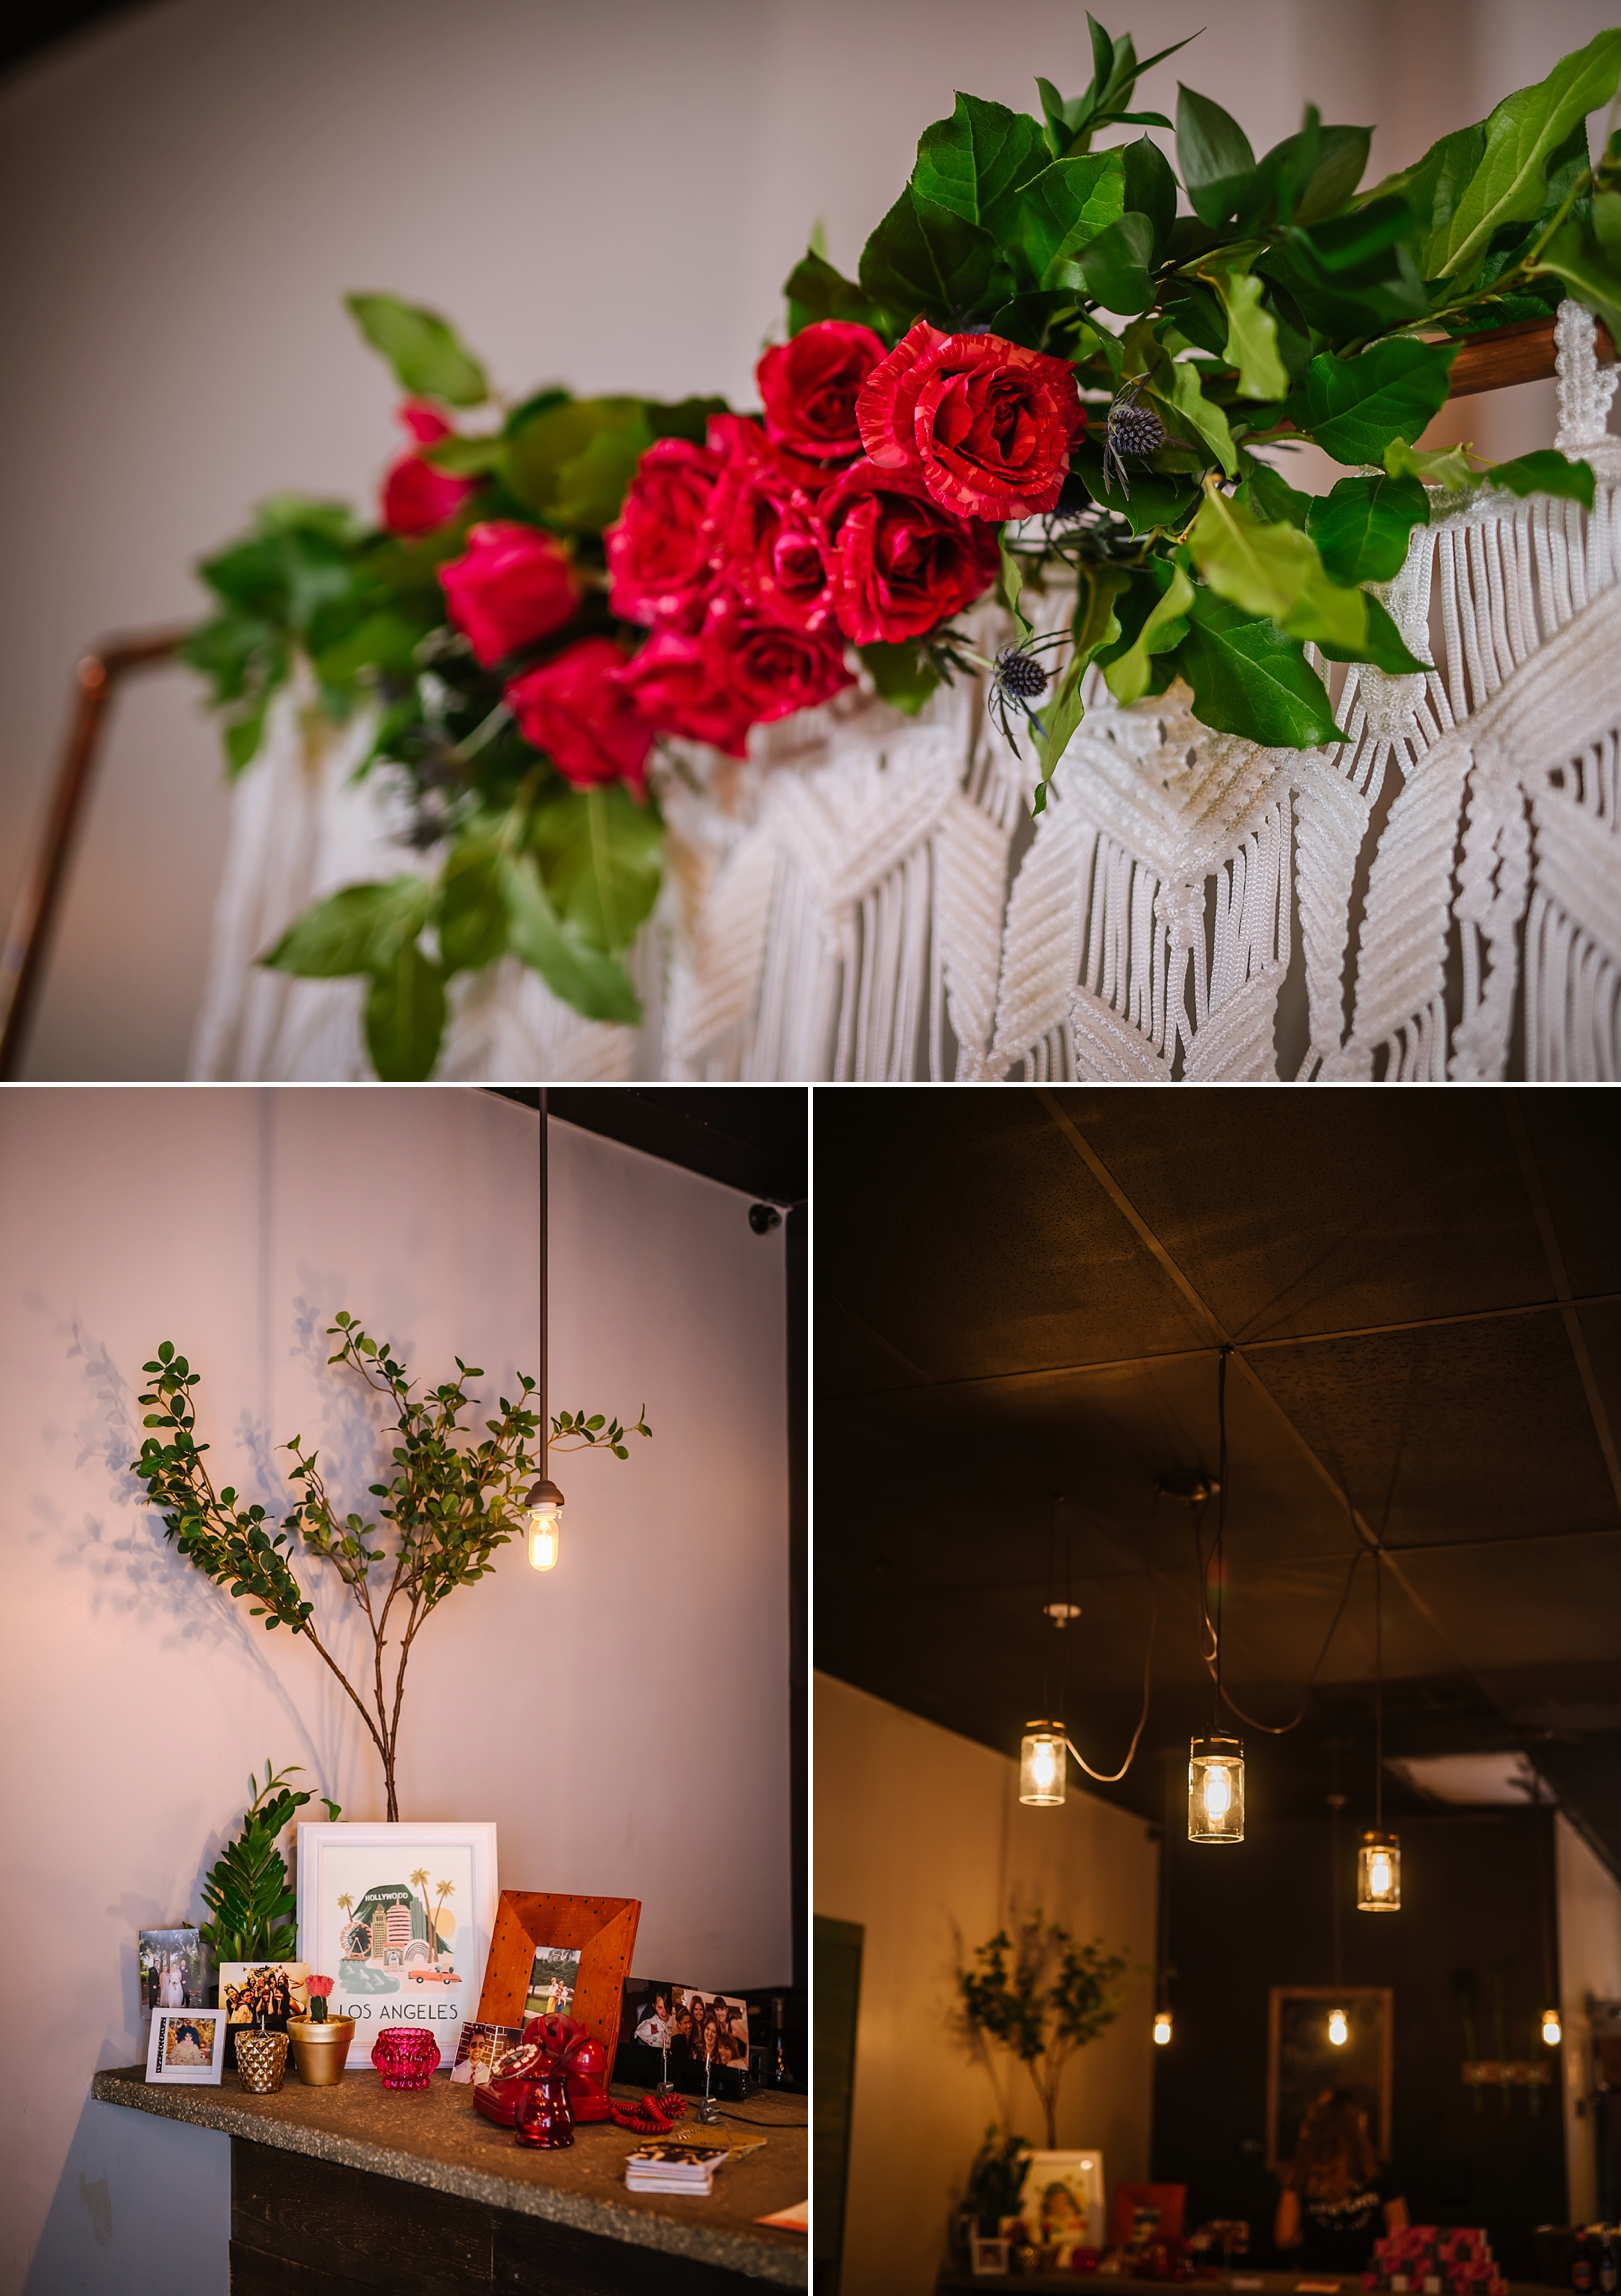 tampa-event-photographer-styled-party-ideas-oh-hello_0004.jpg